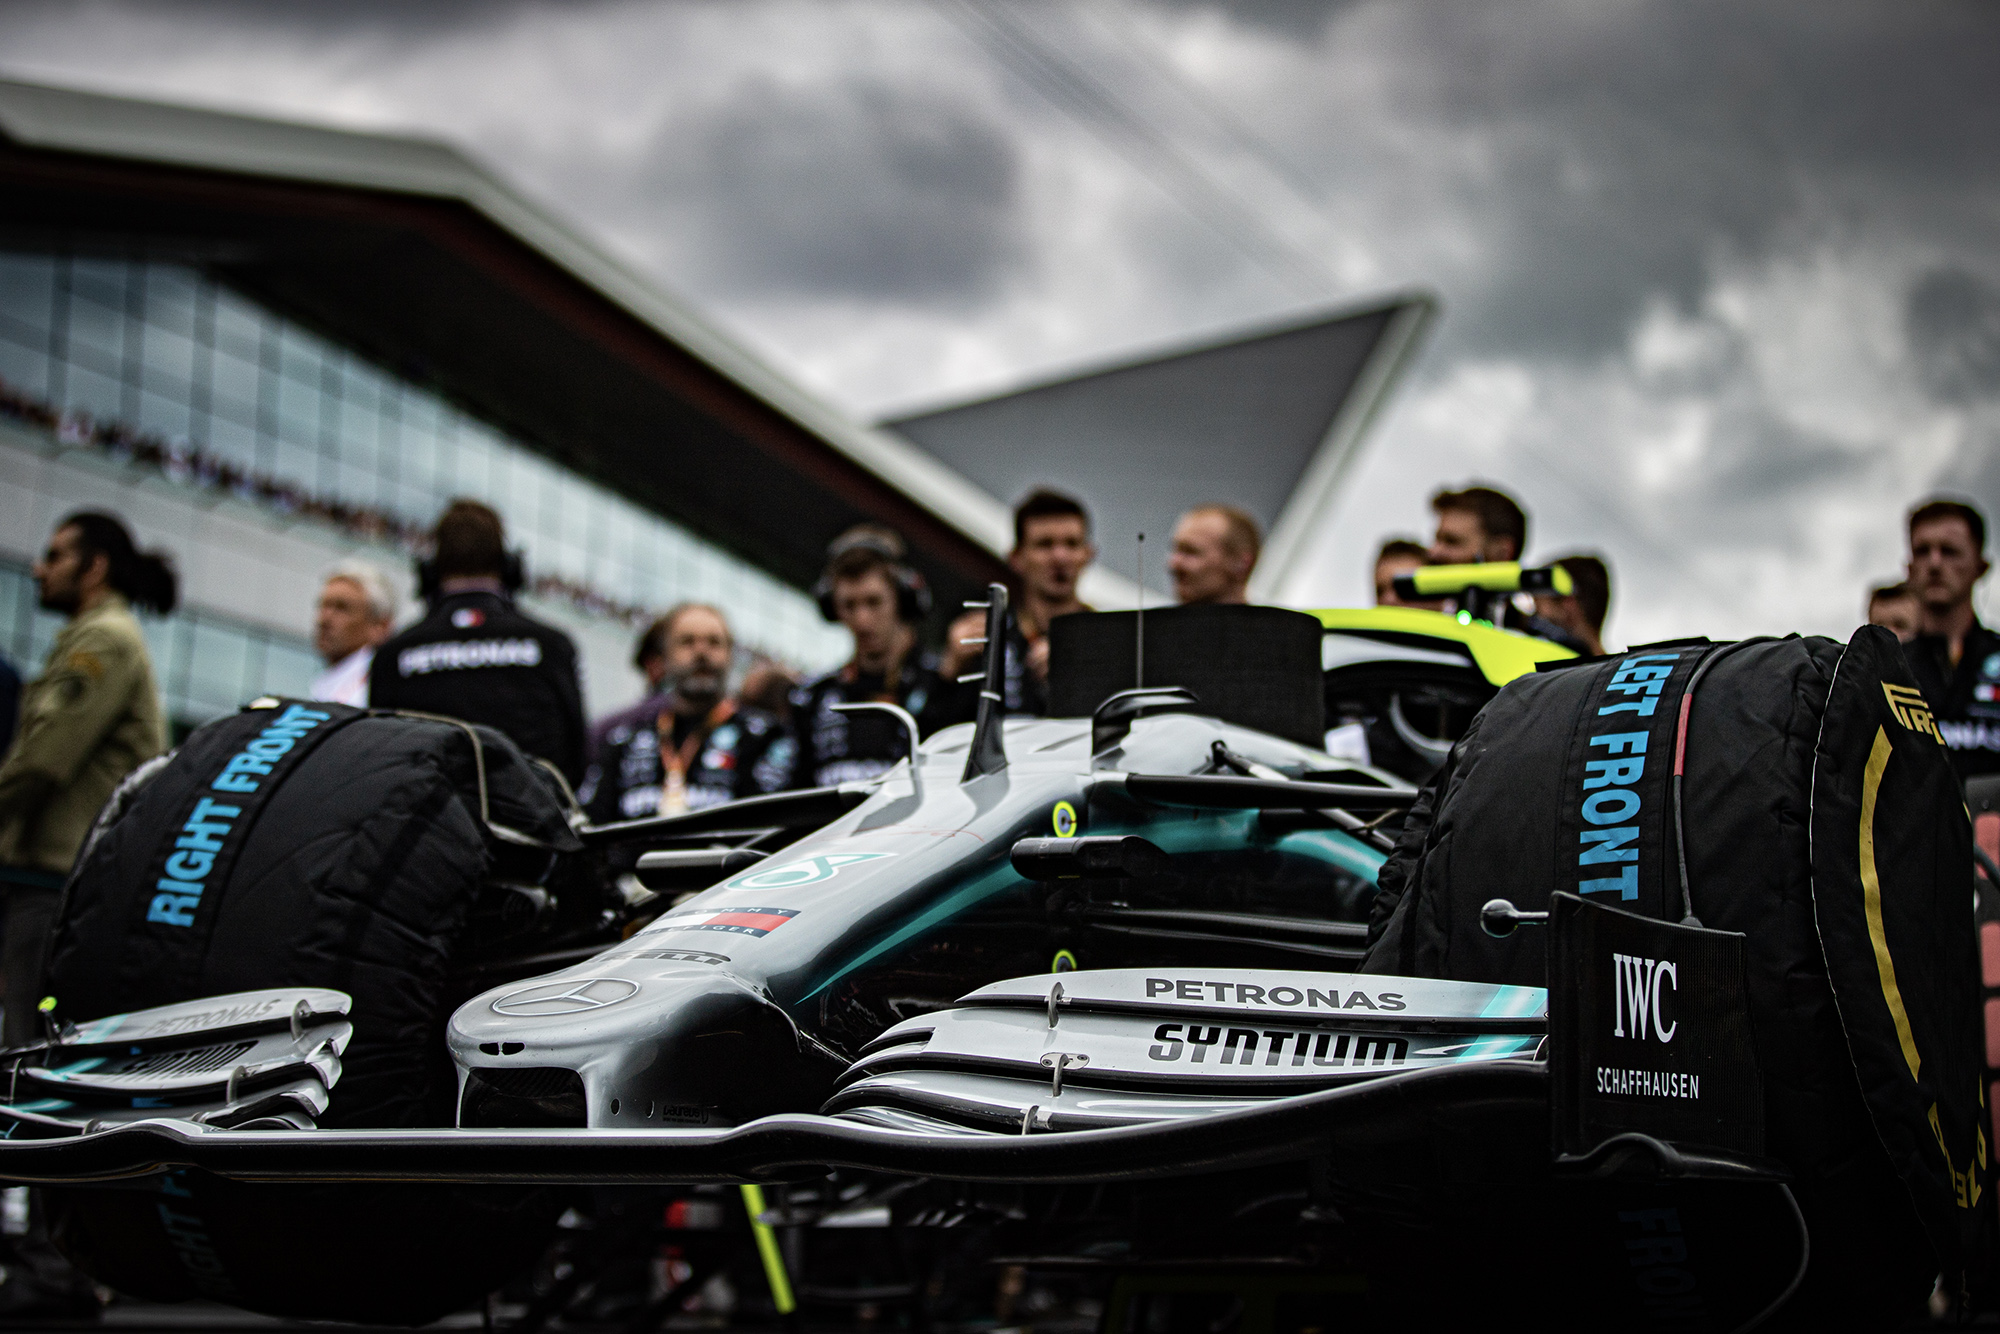 Valtteri Bottas Mercedes on the grid on front of the Silverstone Wing at the British Grand Prix